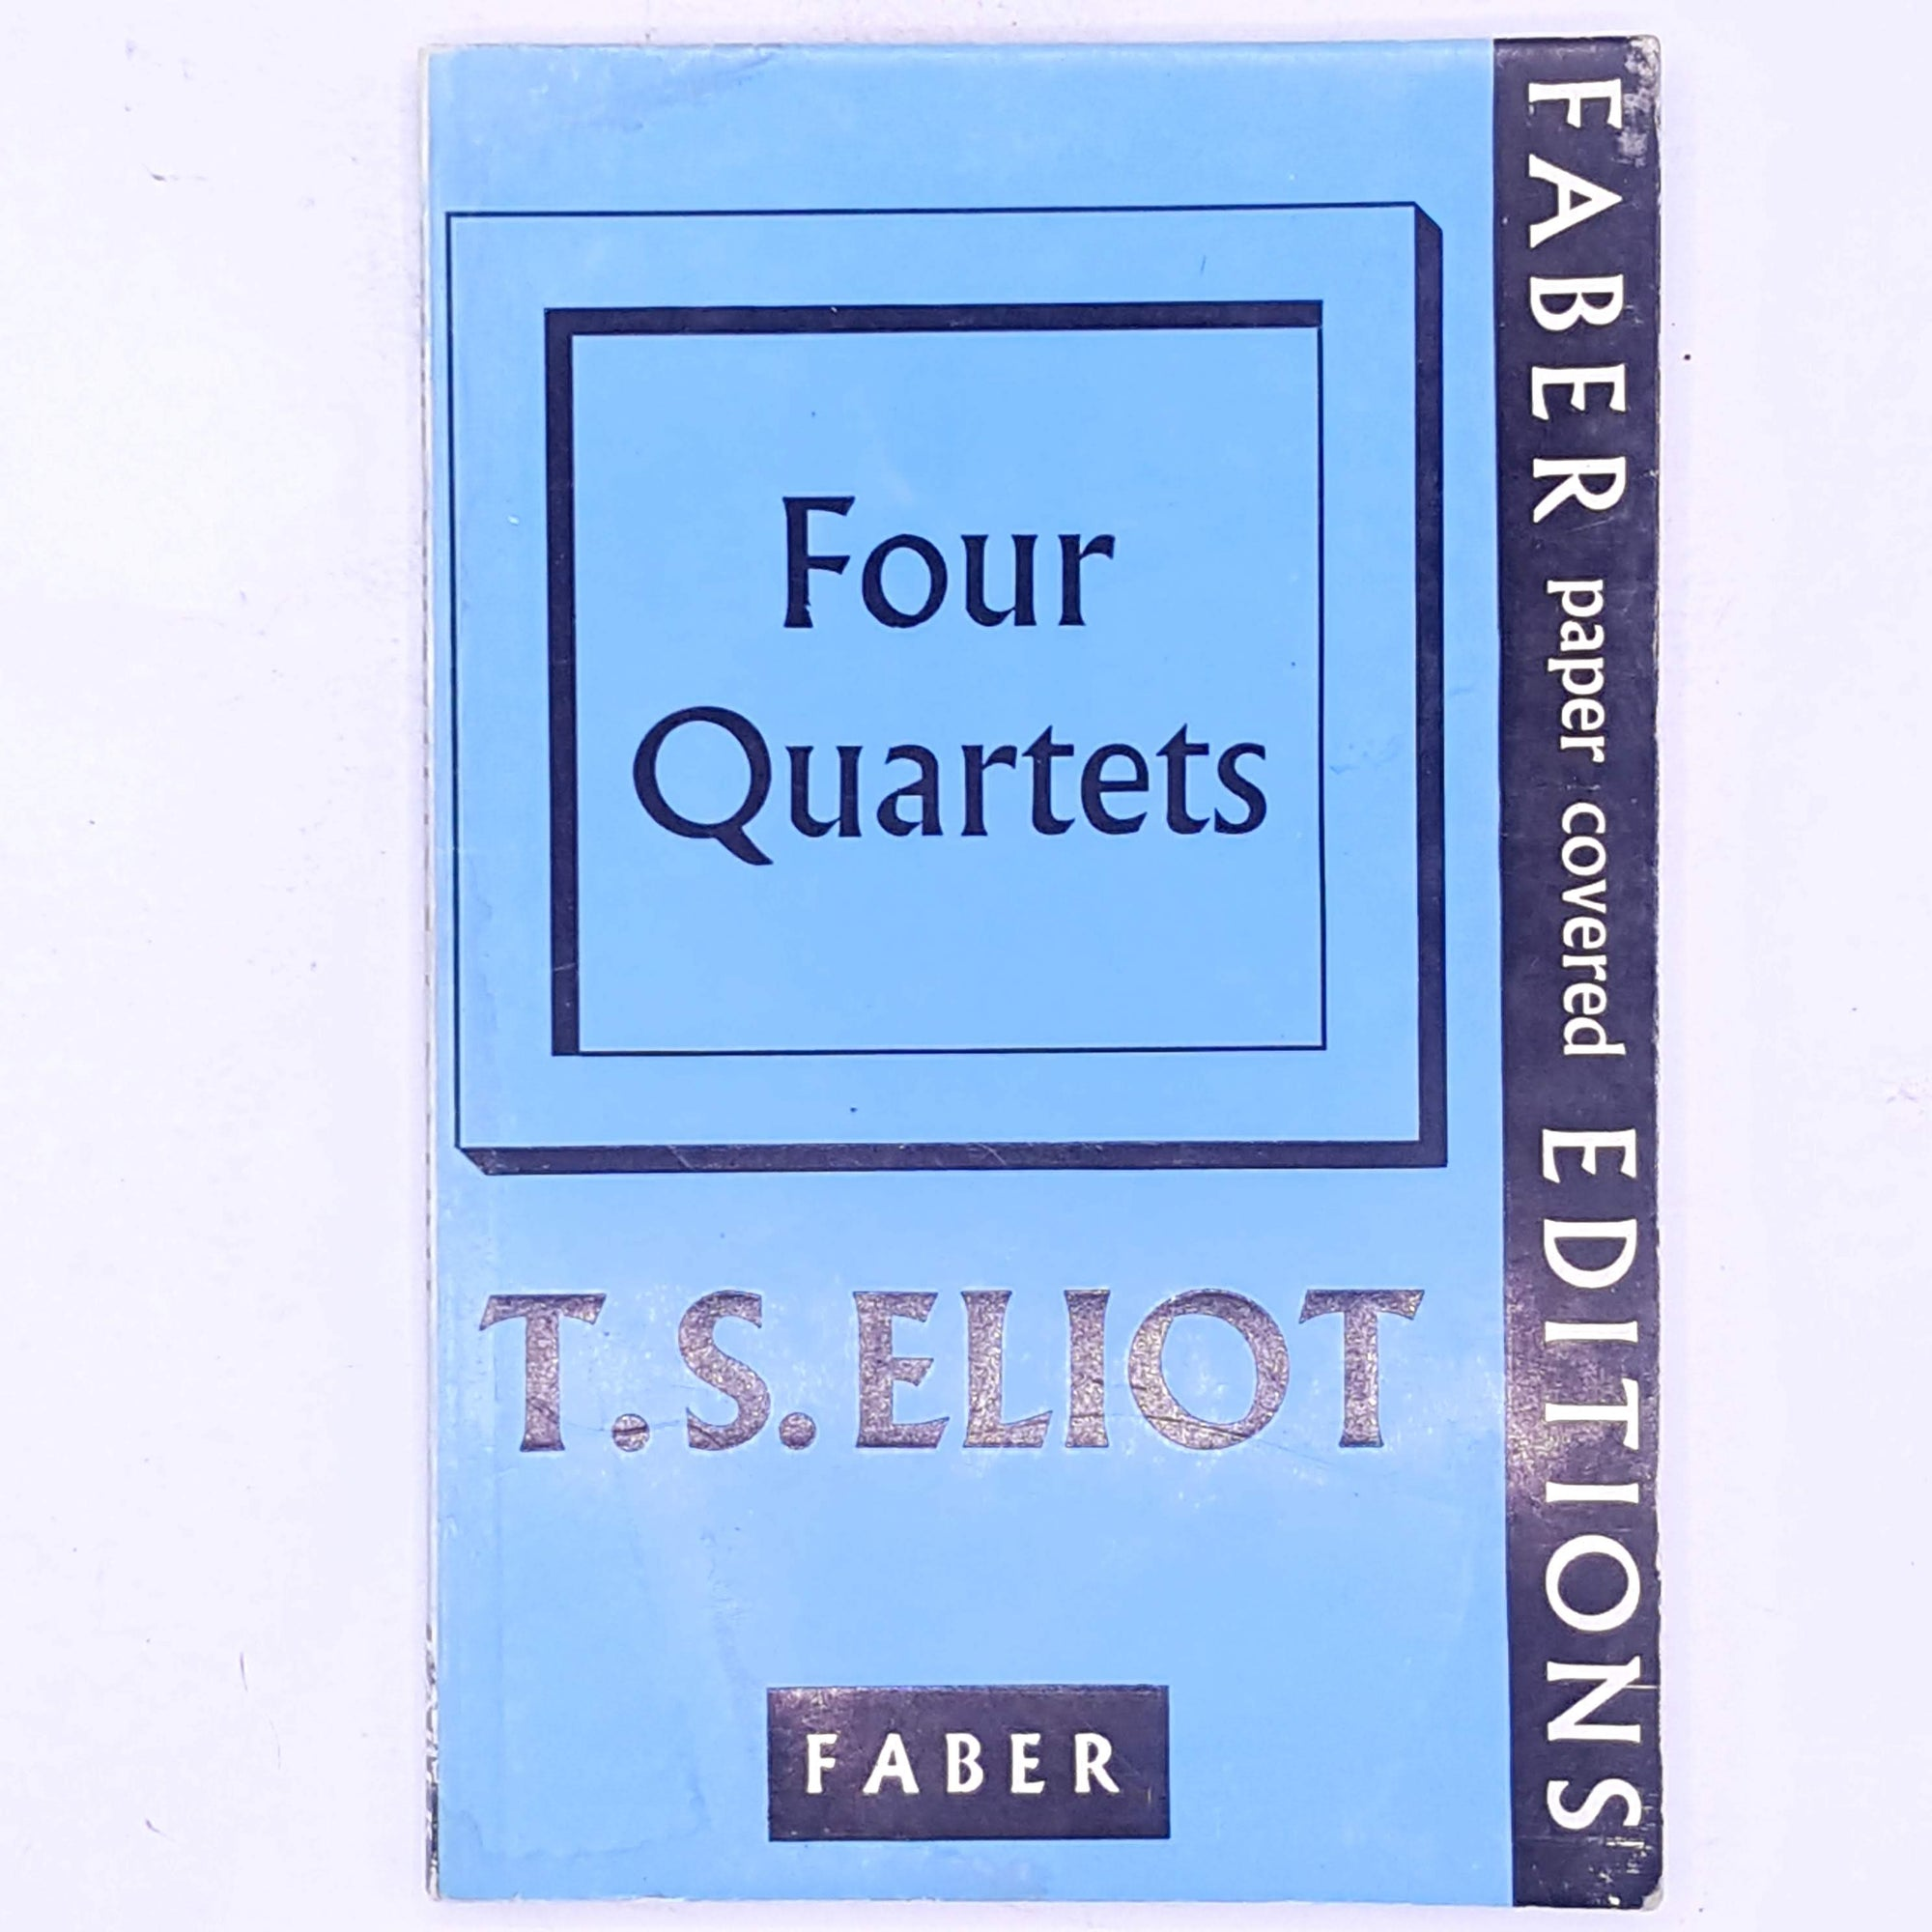 four-quartets-faber-and-faber-country-house-library-thrift-decorative-vintage-classic-antique-books-t.s-eliot-poet-poetry-american-english-author-playwright-poet-poems-patterned-old-